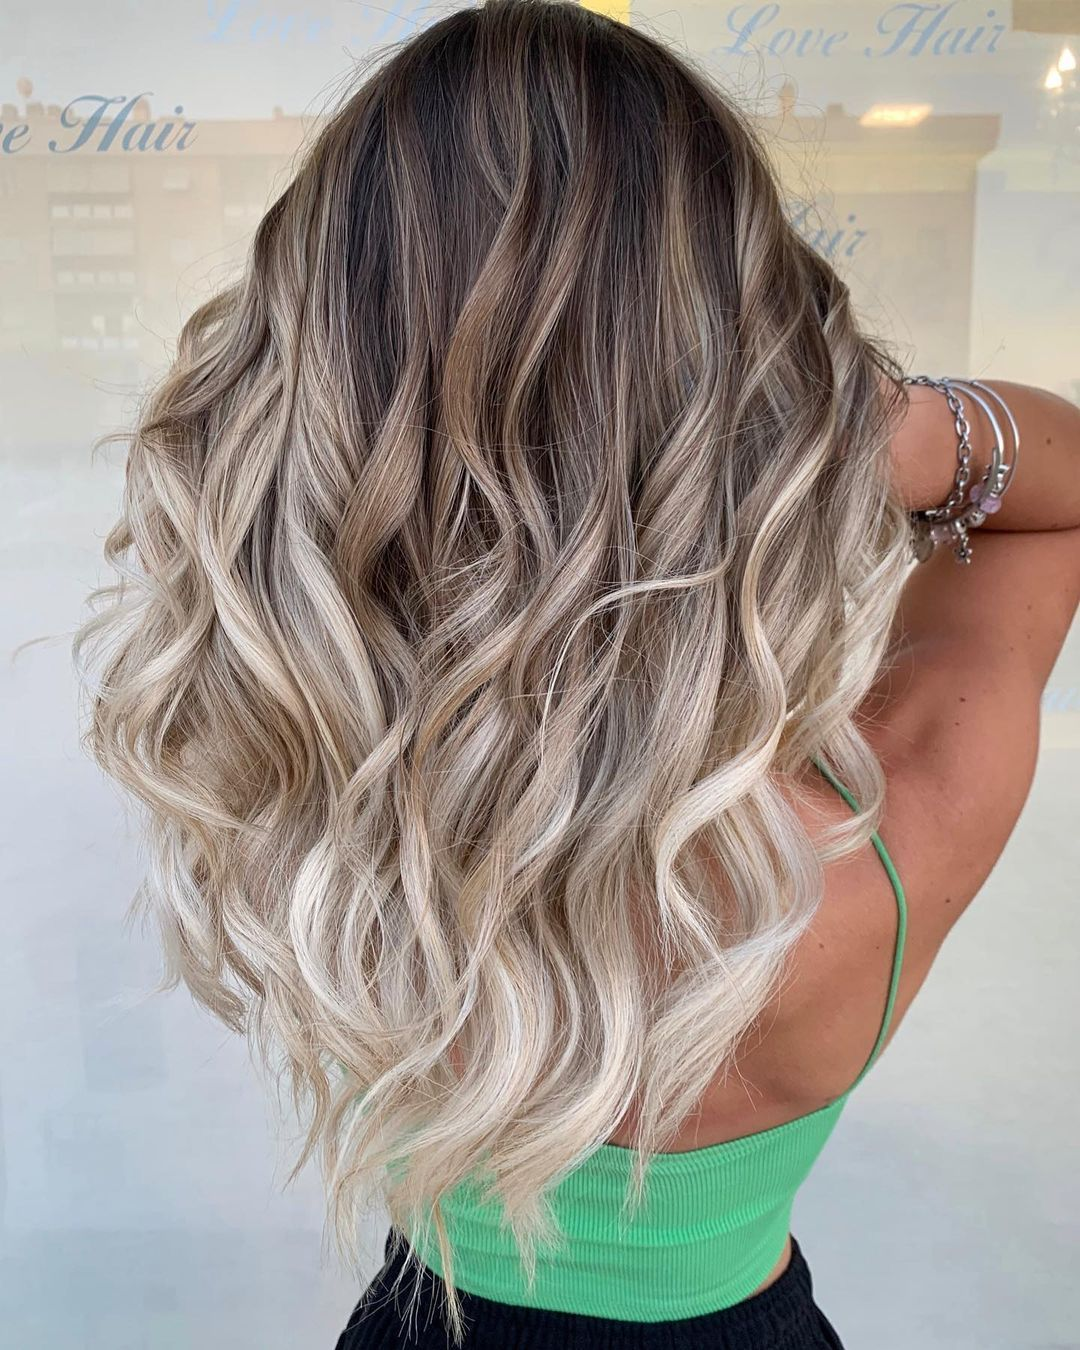 50 Amazing Blonde Balayage Hair Color Ideas For 2021 Hair Adviser Hair Inspiration Color Balayage Hair Hair Color Balayage